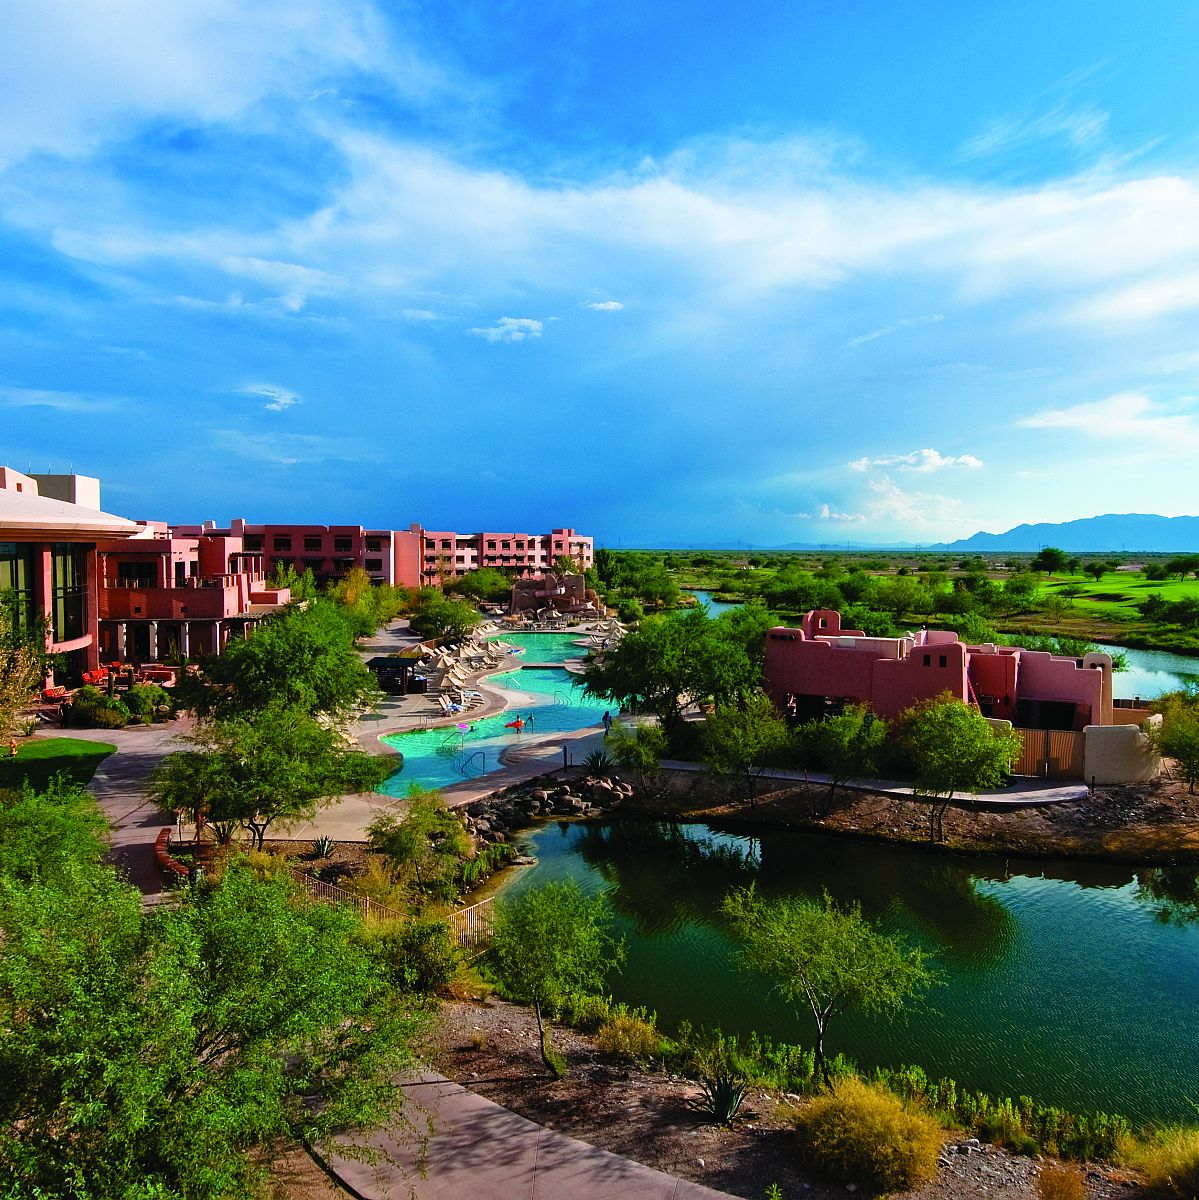 Sheraton Grand Wild Horse Pass Resort and Spa, Chandler AZ